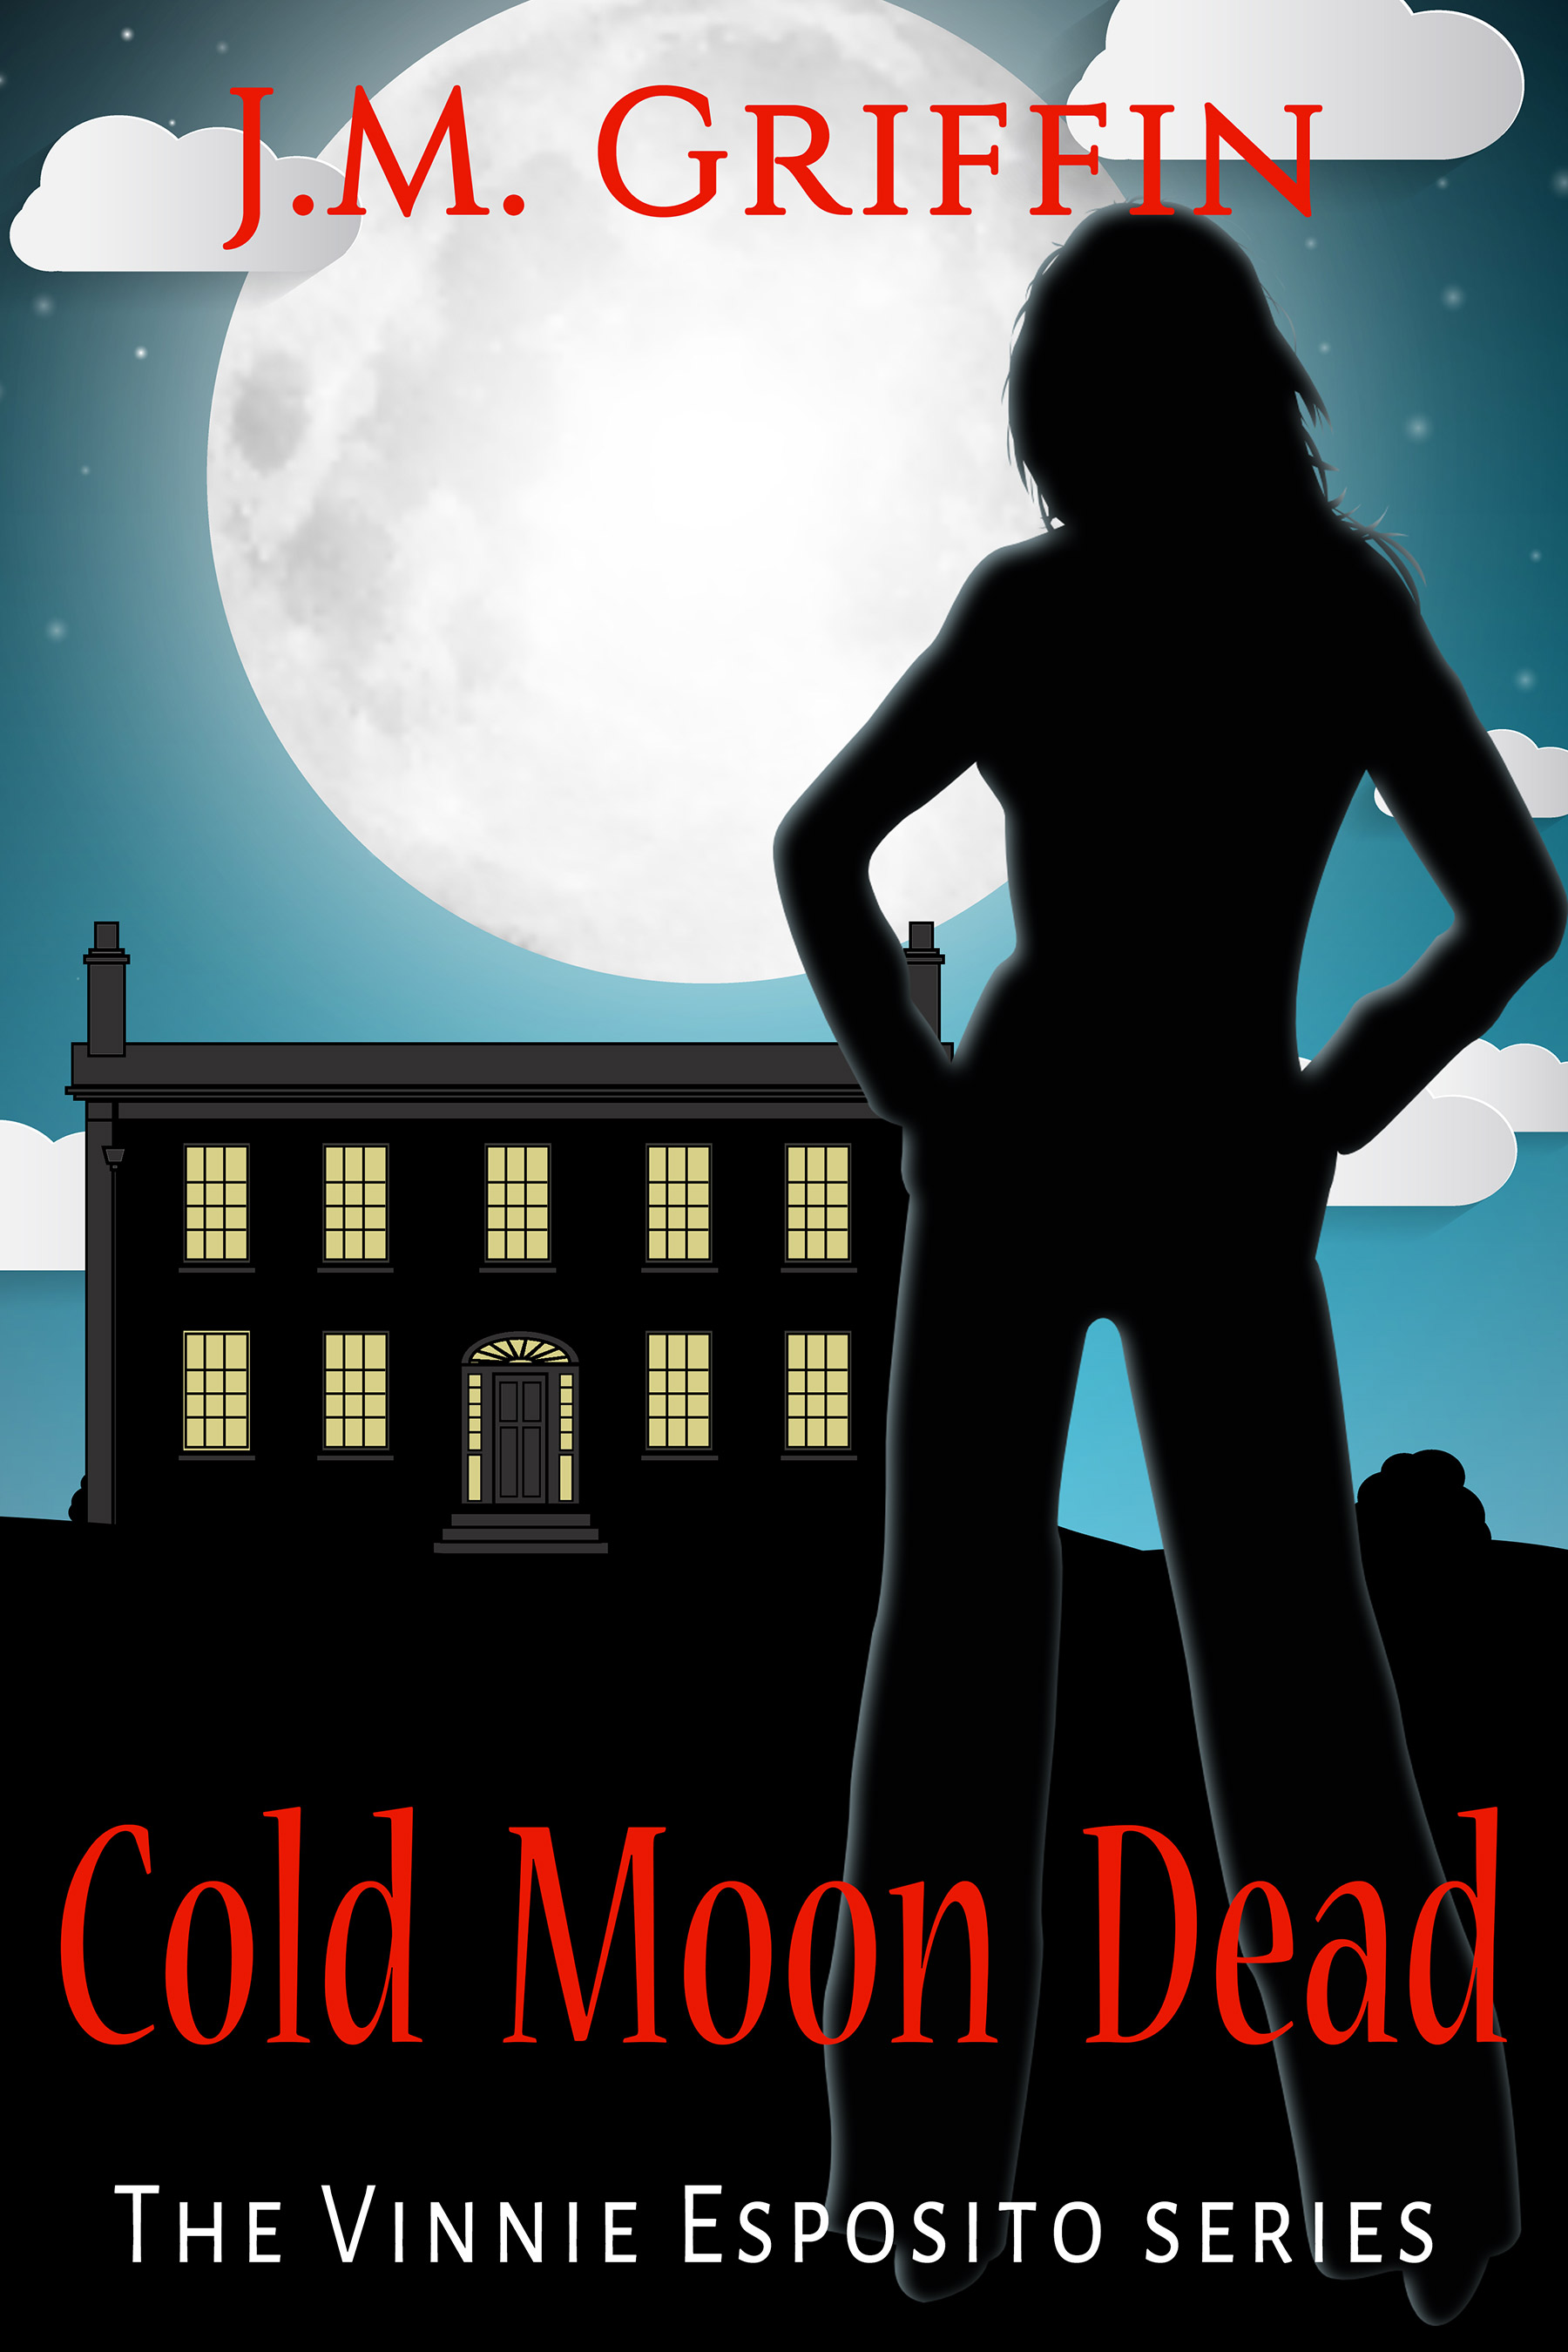 JMG-ColdMoonDead-VES-4-Ebook